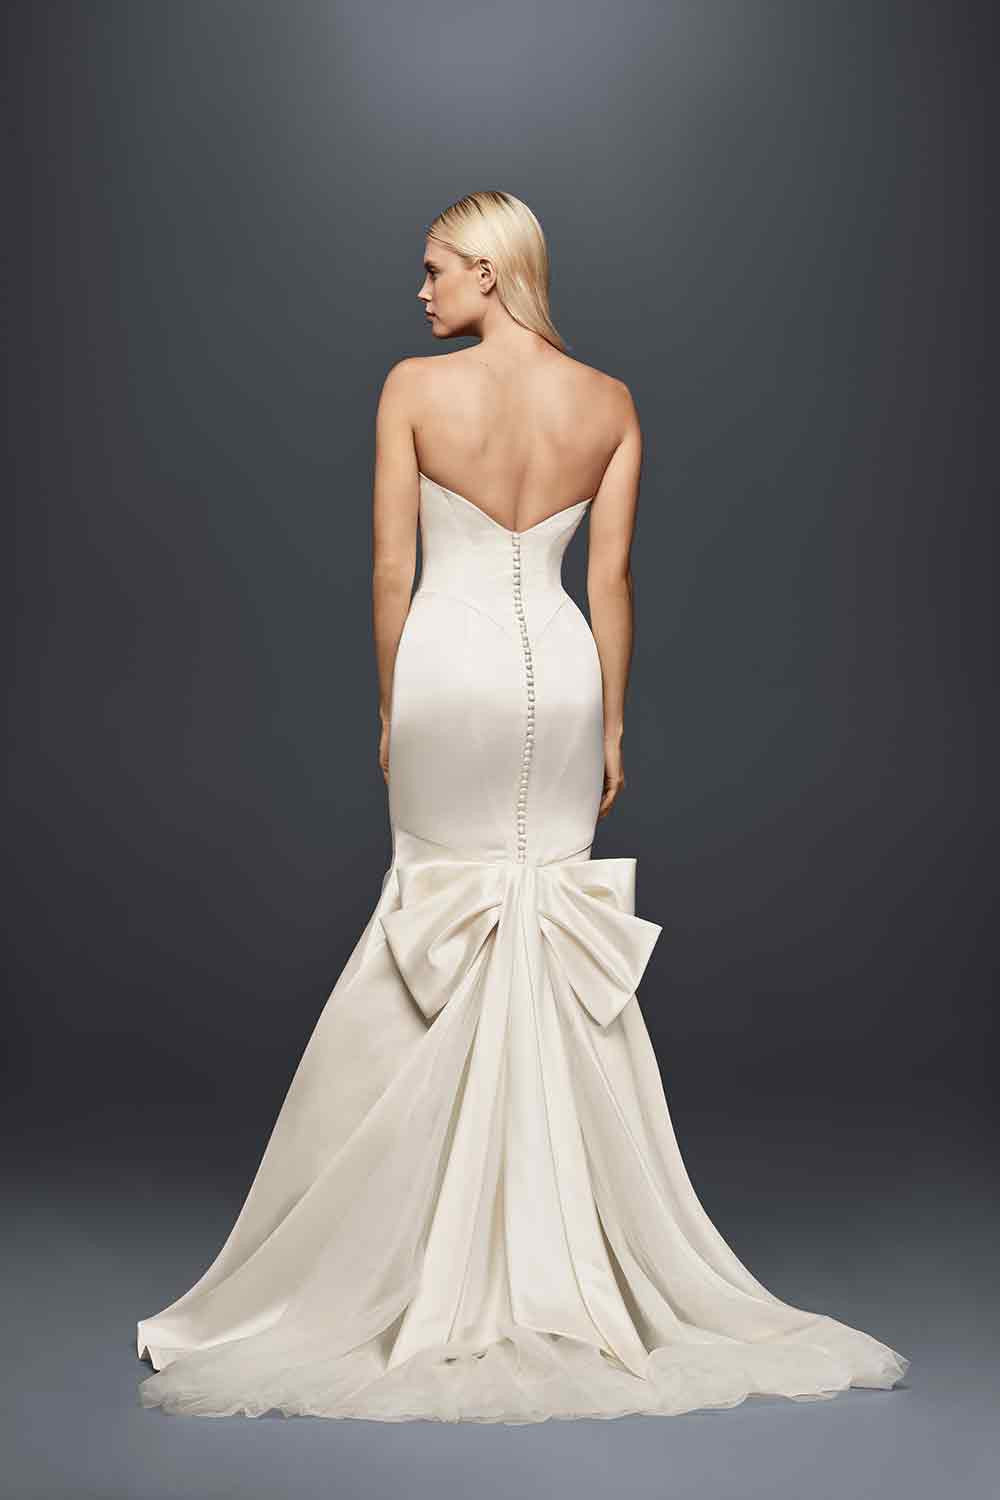 Bow wedding dress - hitched.com